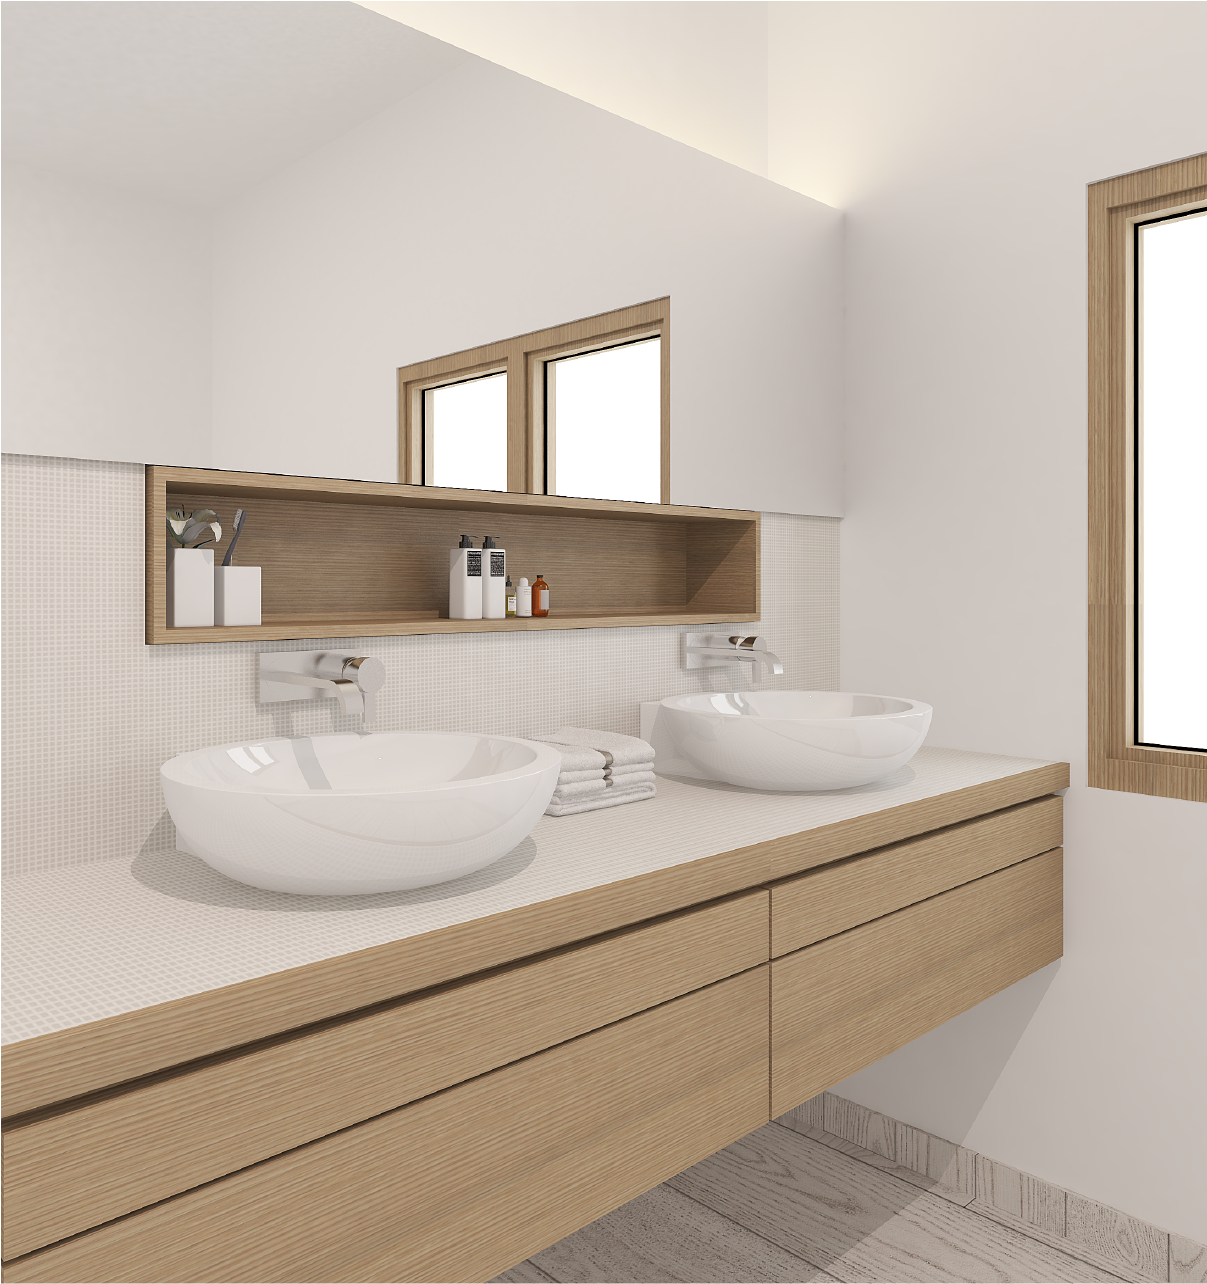 Toilet cabinets 94 - high pressure laminate singapore